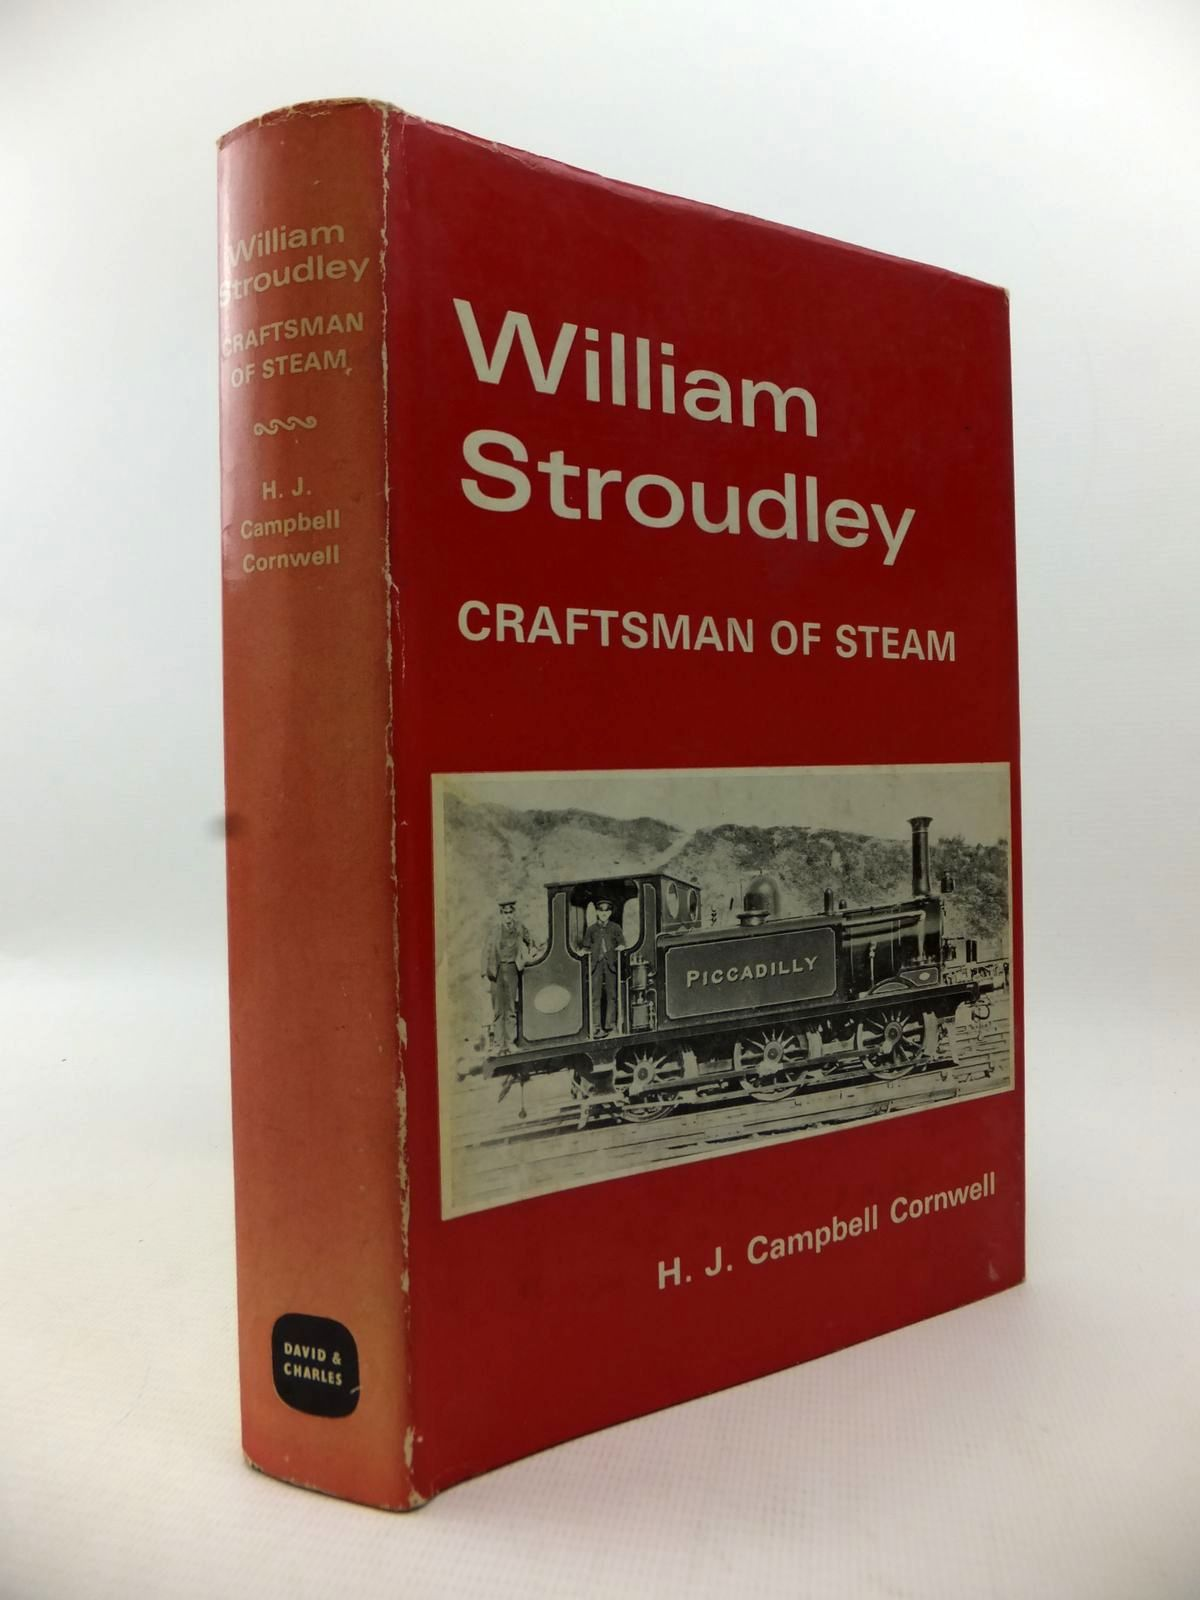 Photo of WILLIAM STROUDLEY CRAFTSMAN OF STEAM written by Cornwell, H.J. Campbell published by David & Charles (STOCK CODE: 1813244)  for sale by Stella & Rose's Books